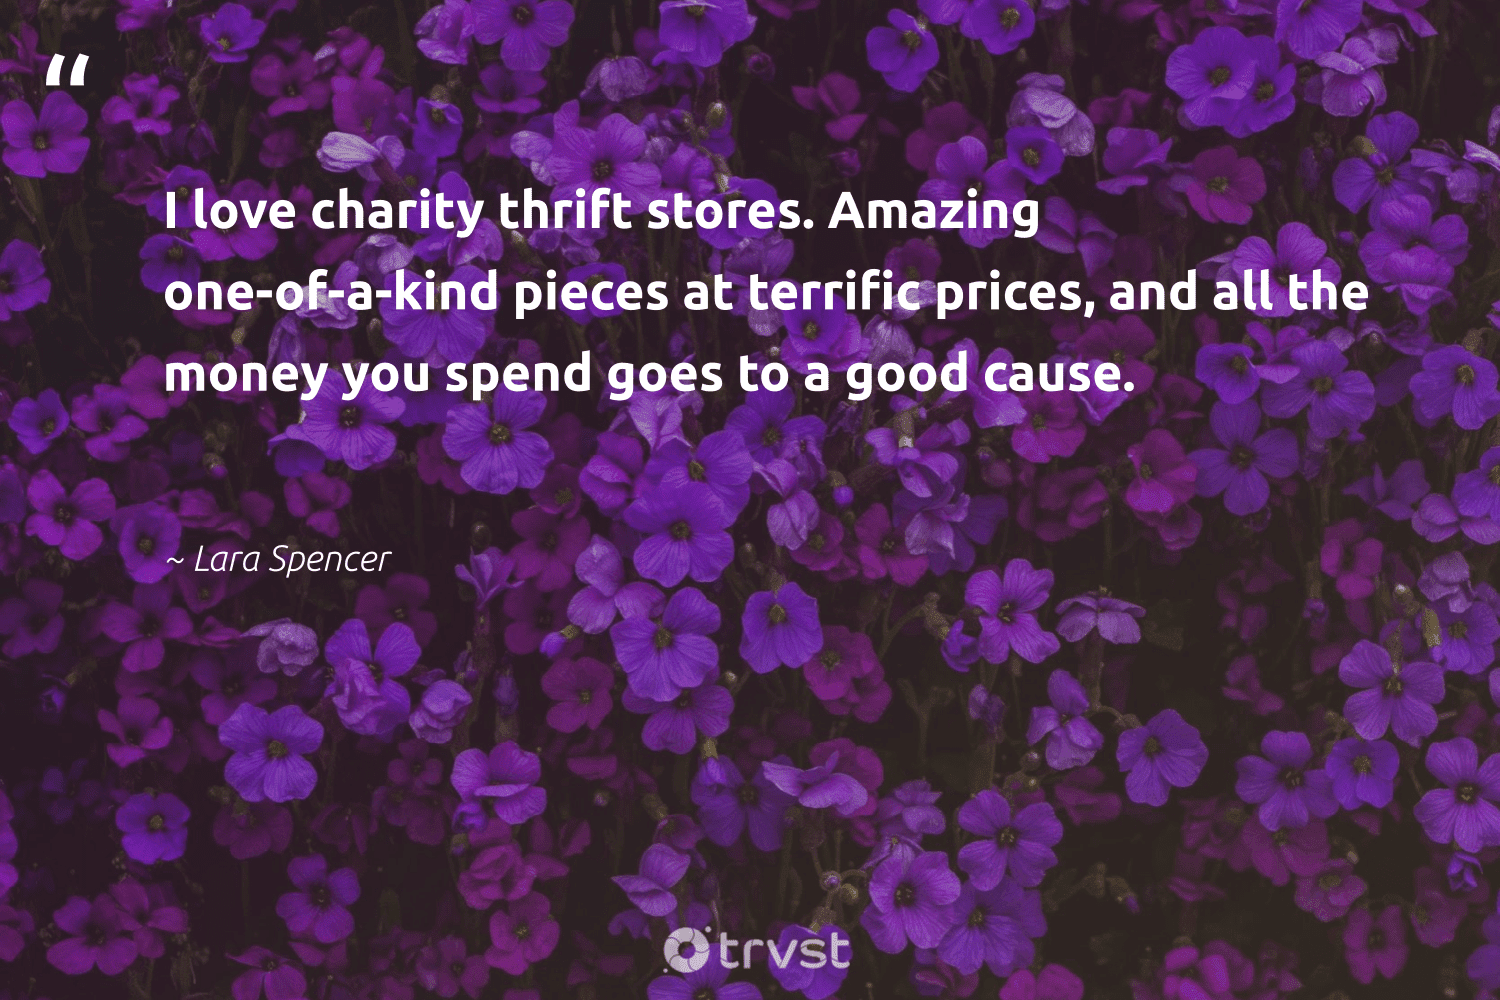 """""""I love charity thrift stores. Amazing one-of-a-kind pieces at terrific prices, and all the money you spend goes to a good cause.""""  - Lara Spencer #trvst #quotes #Charity #love #cause #thrift #communities #weareallone #dogood #nonprofitorganization #equalopportunity #socialchange"""